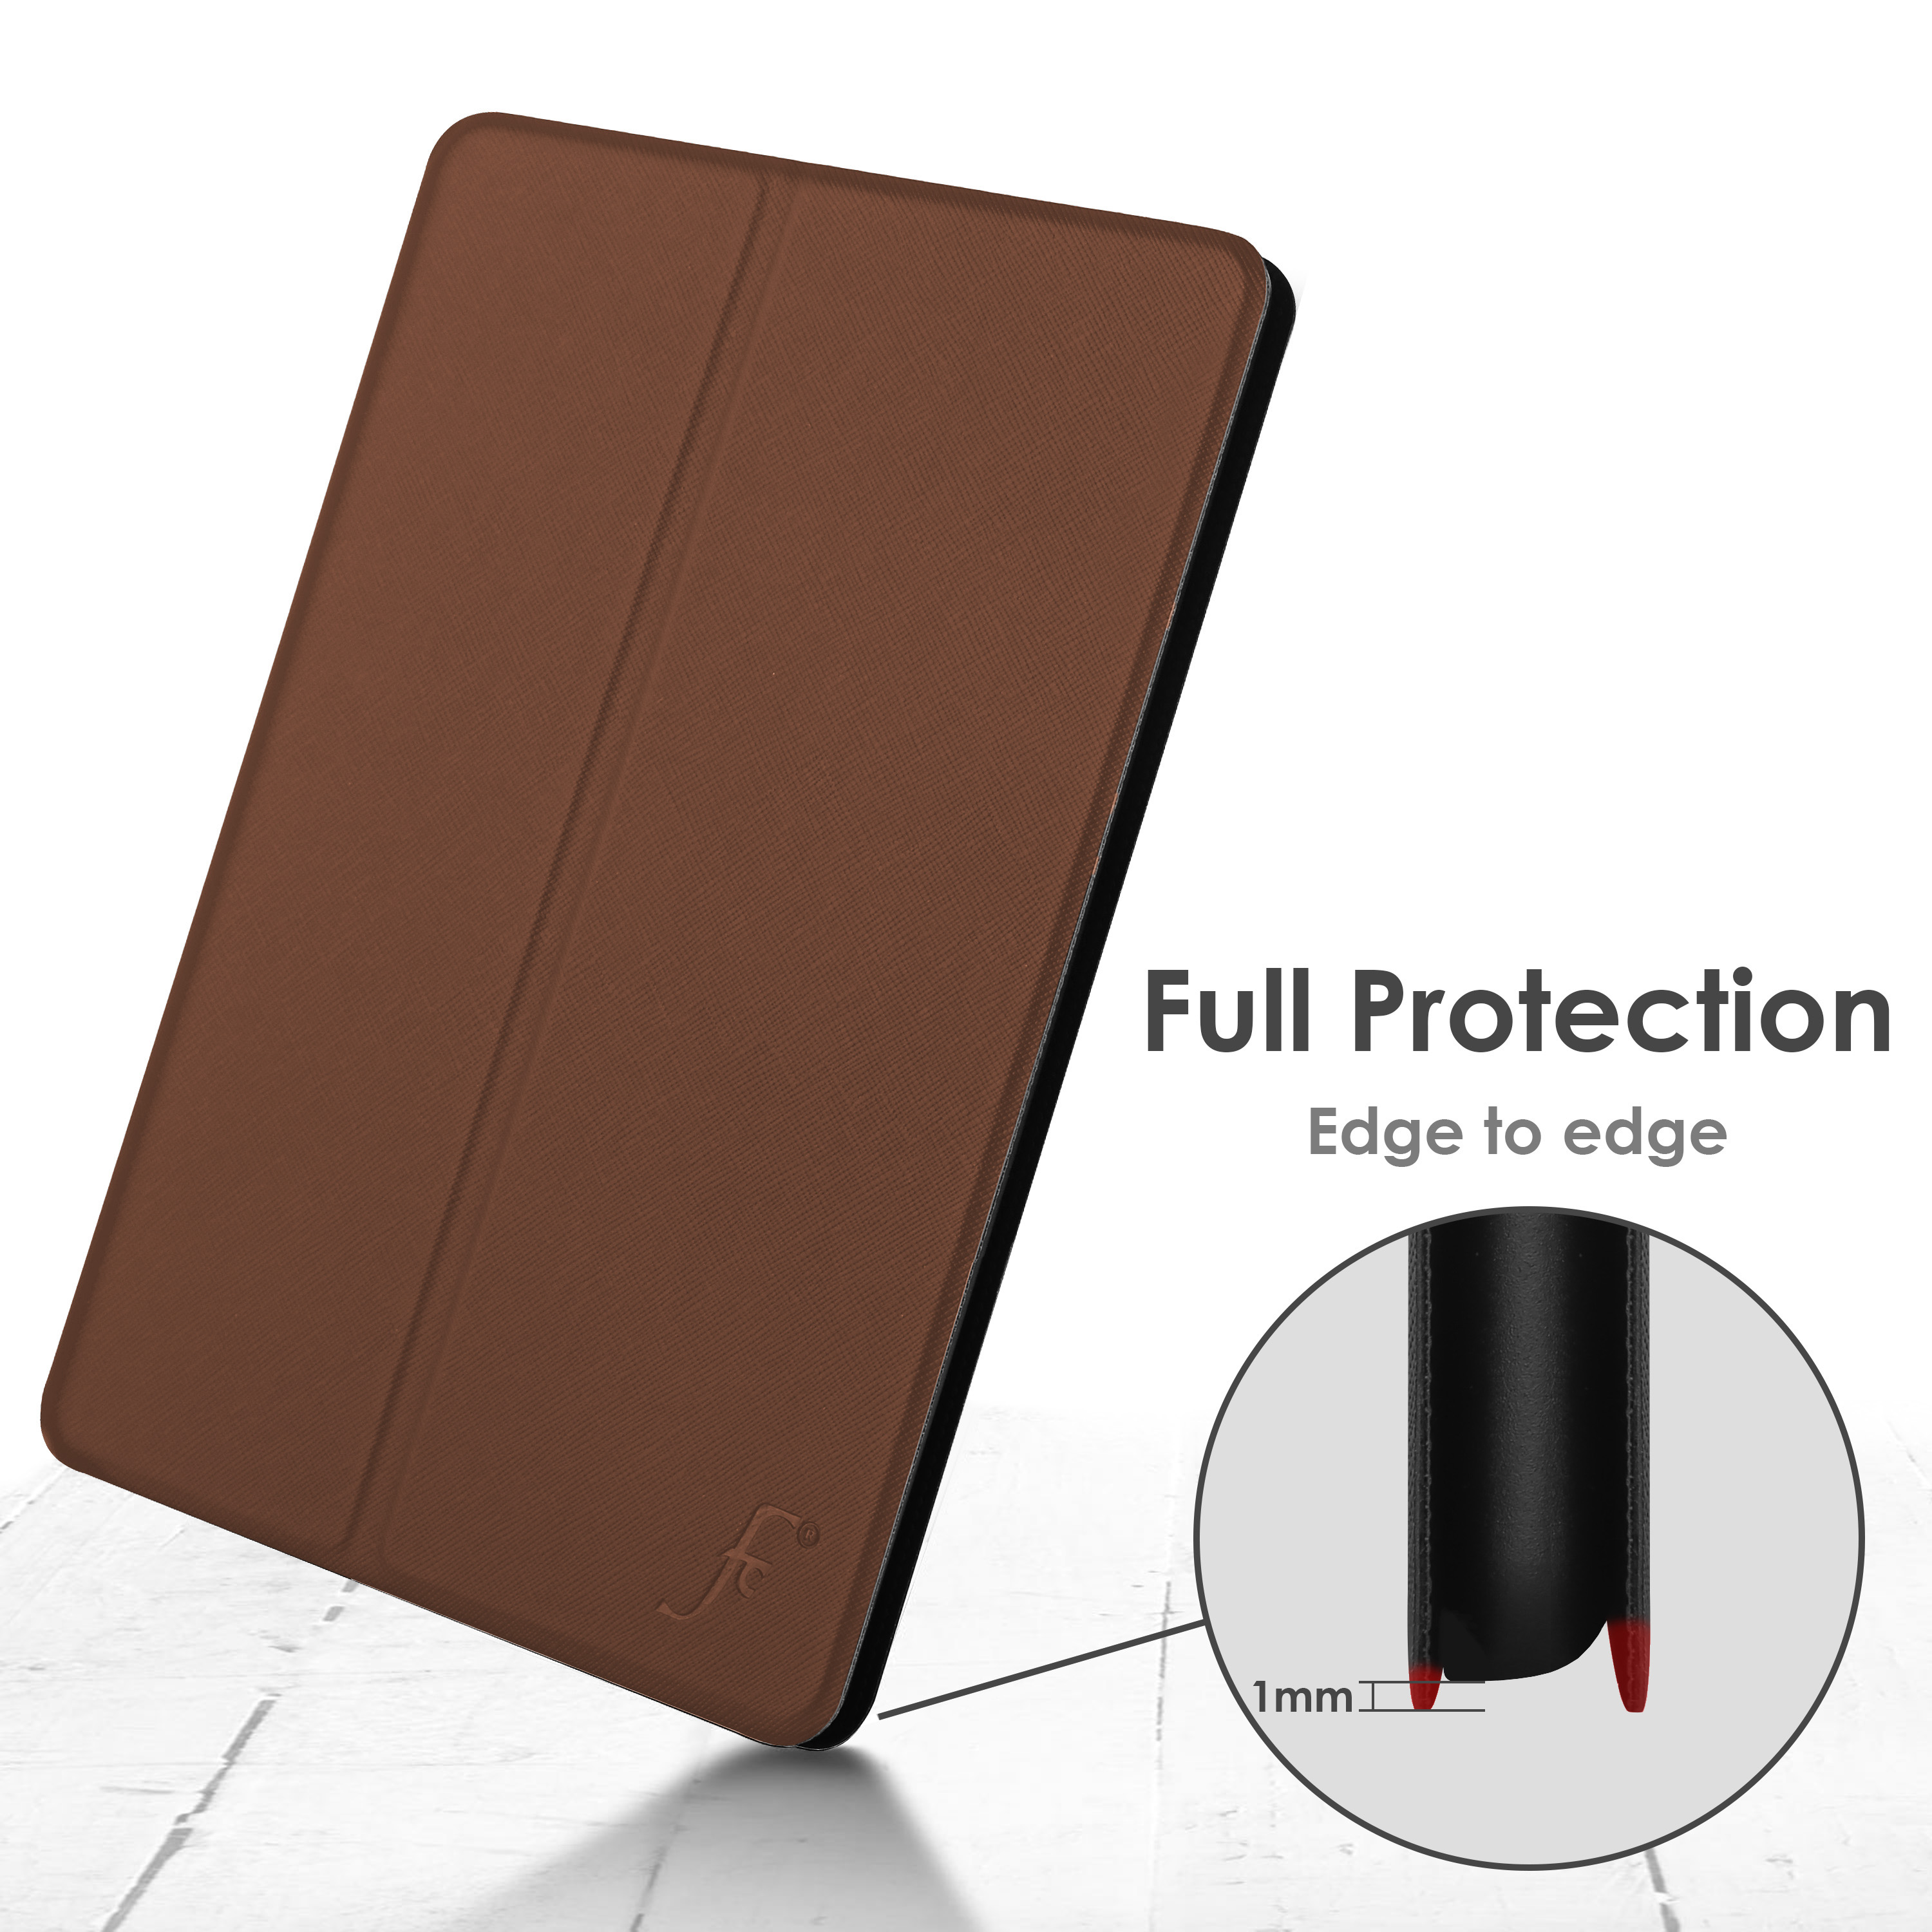 miniature 14 - Samsung Galaxy Tab A 10.1 2019 Étui Magnétique Protection & Support + Stylet